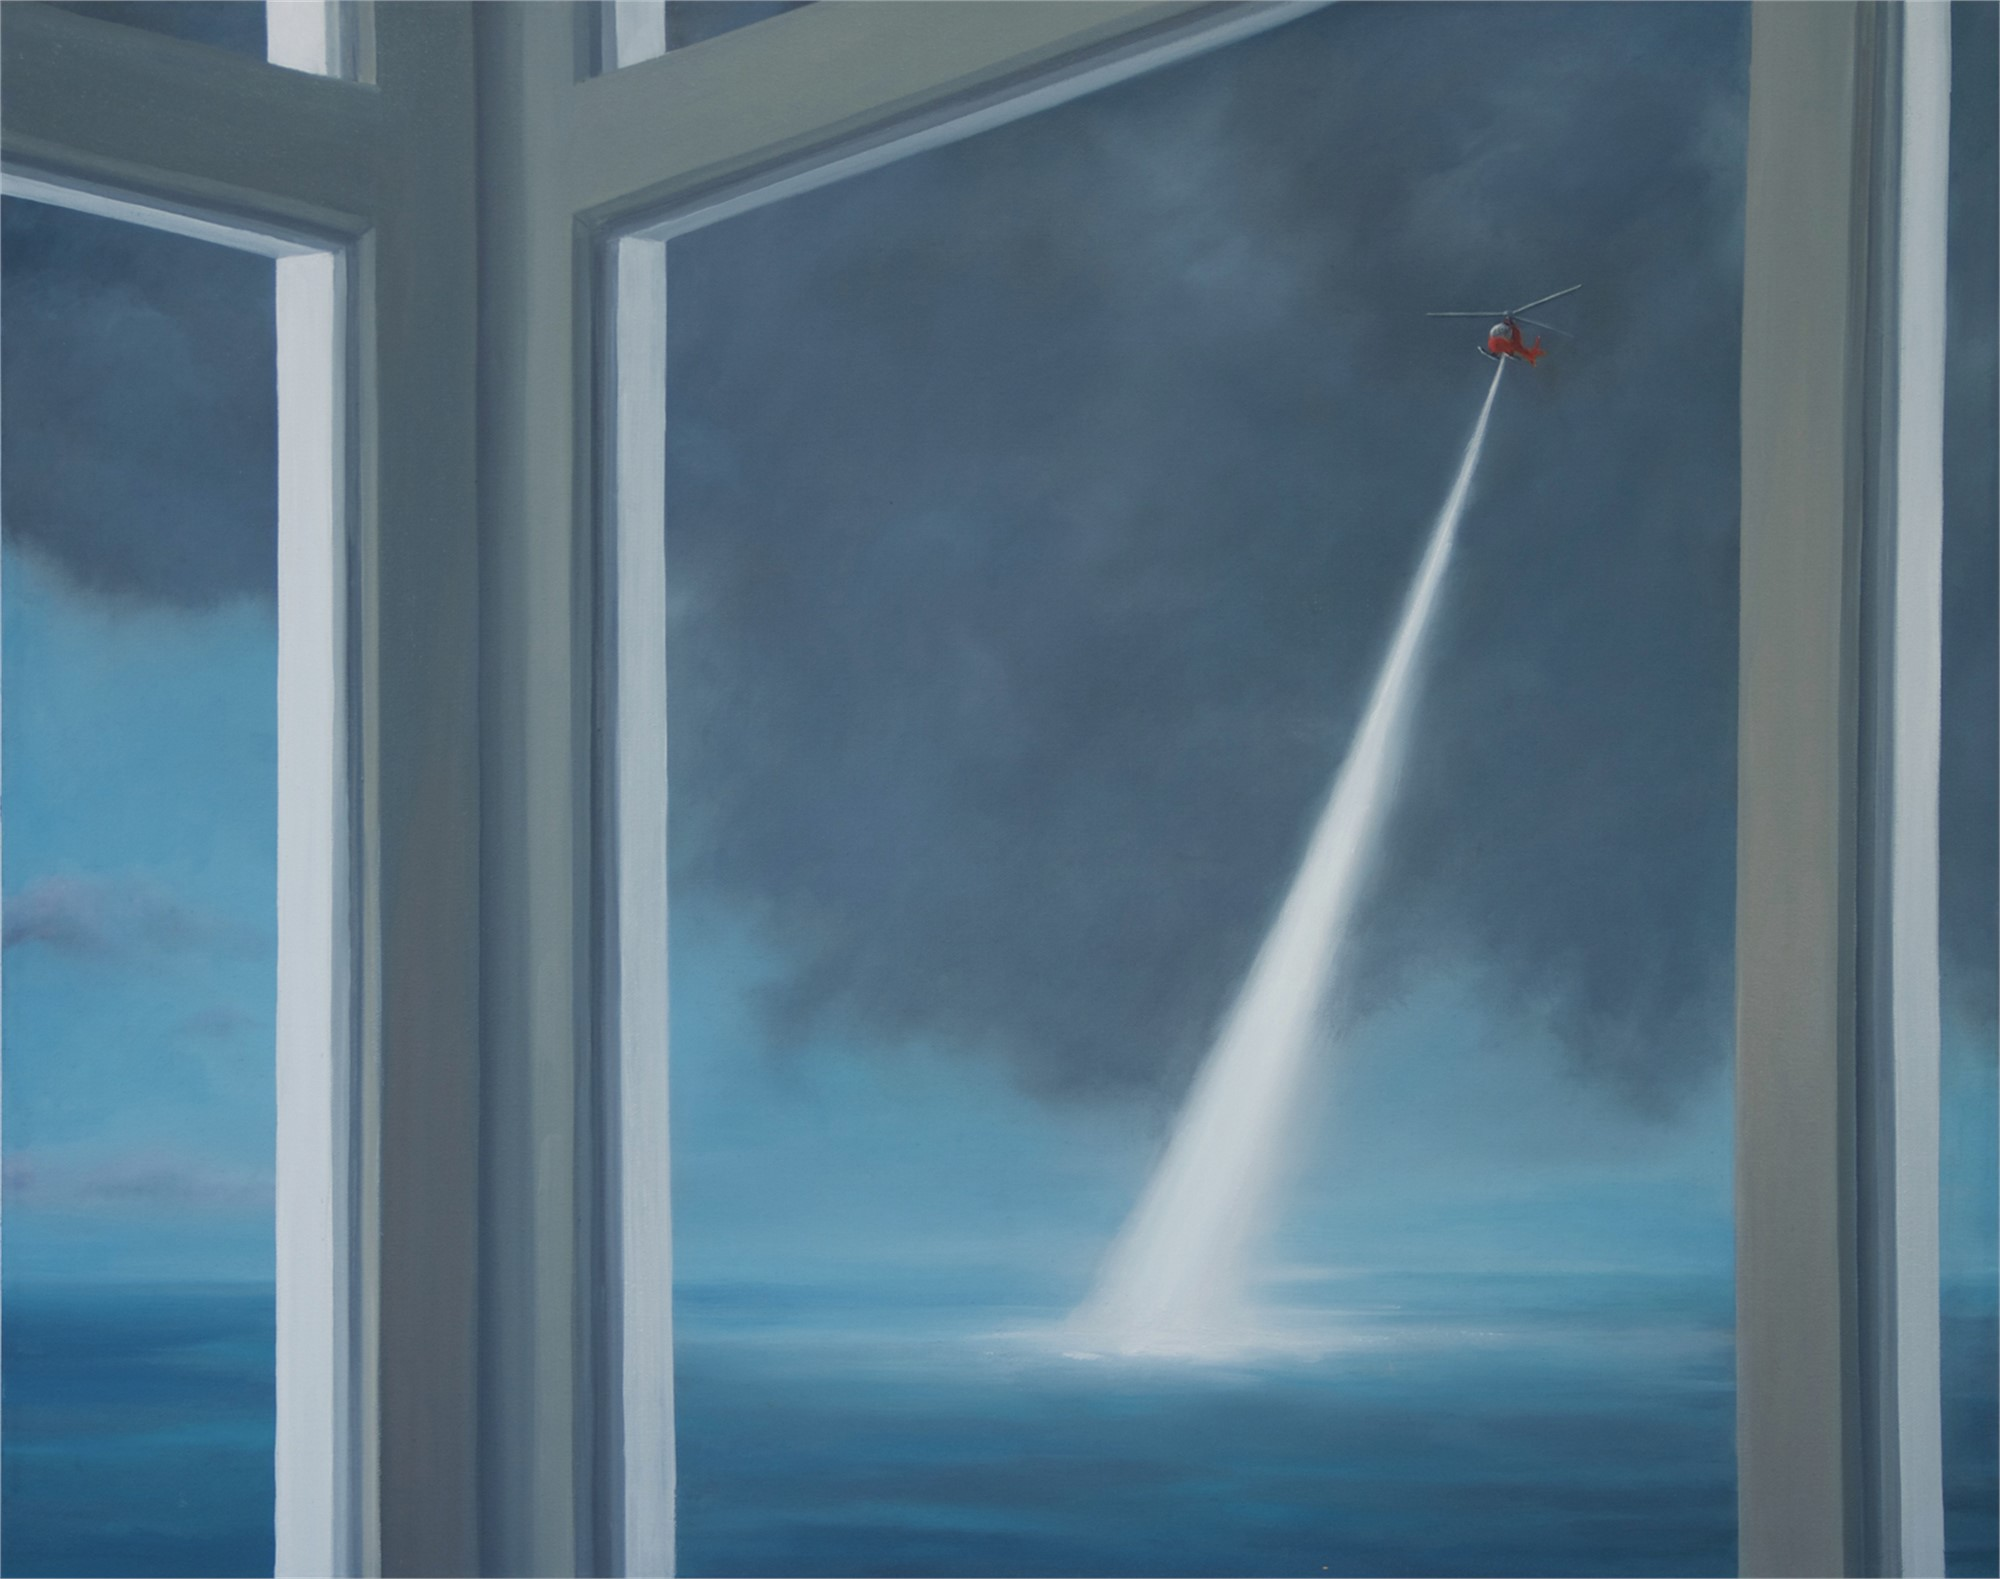 search and rescue by Robert Bissell